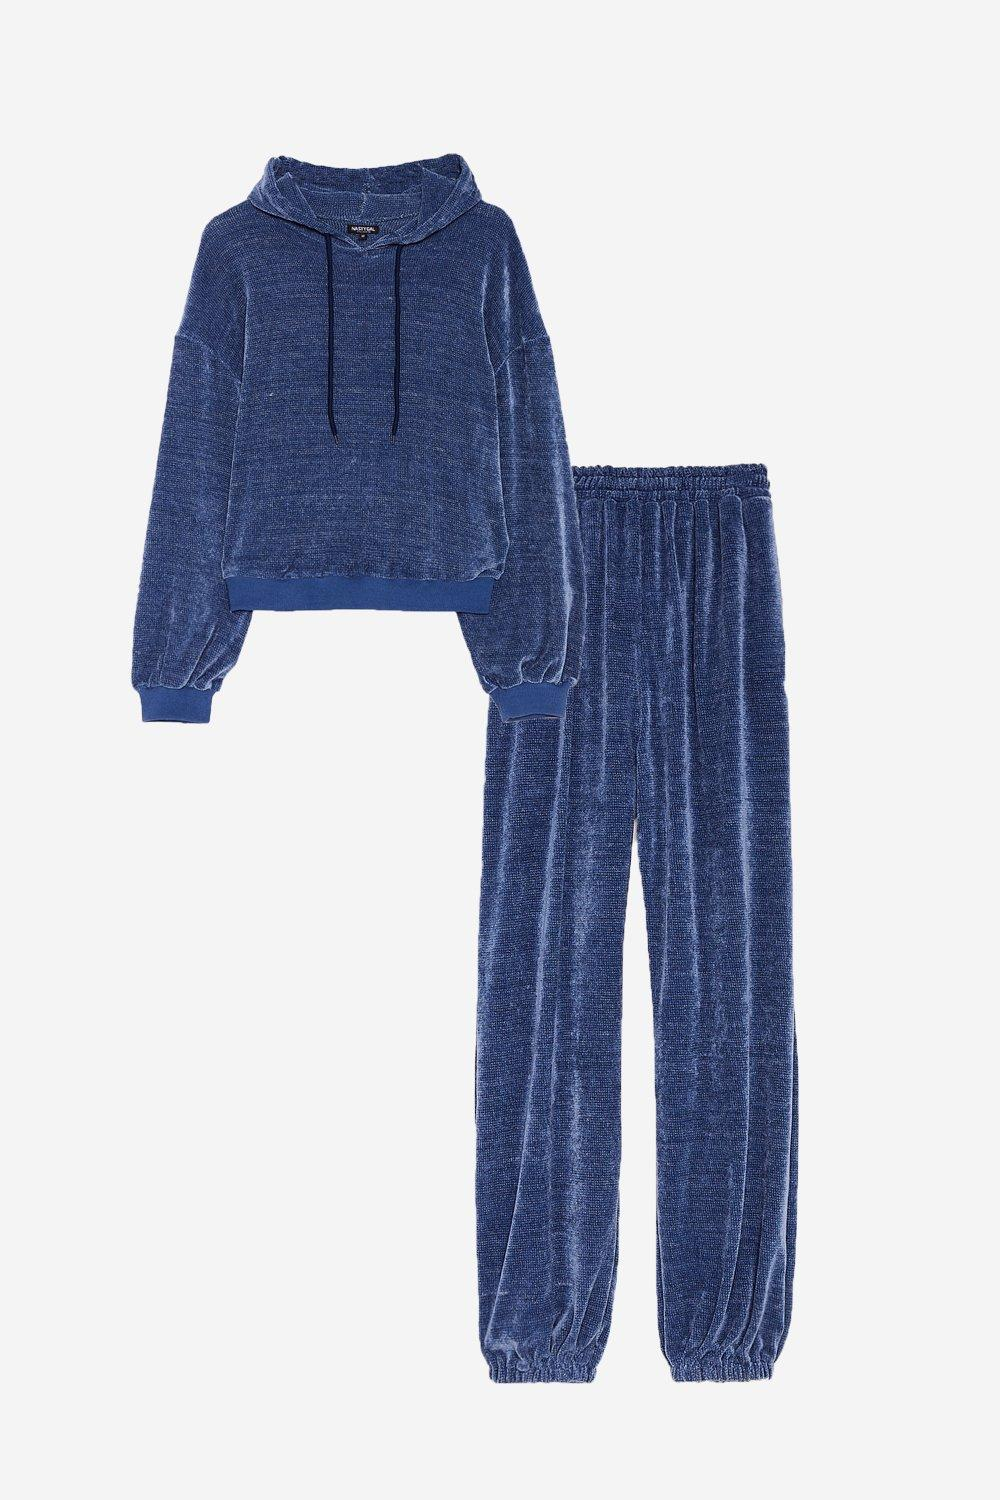 We Chenille You Plus Joggers Lounge Set 16